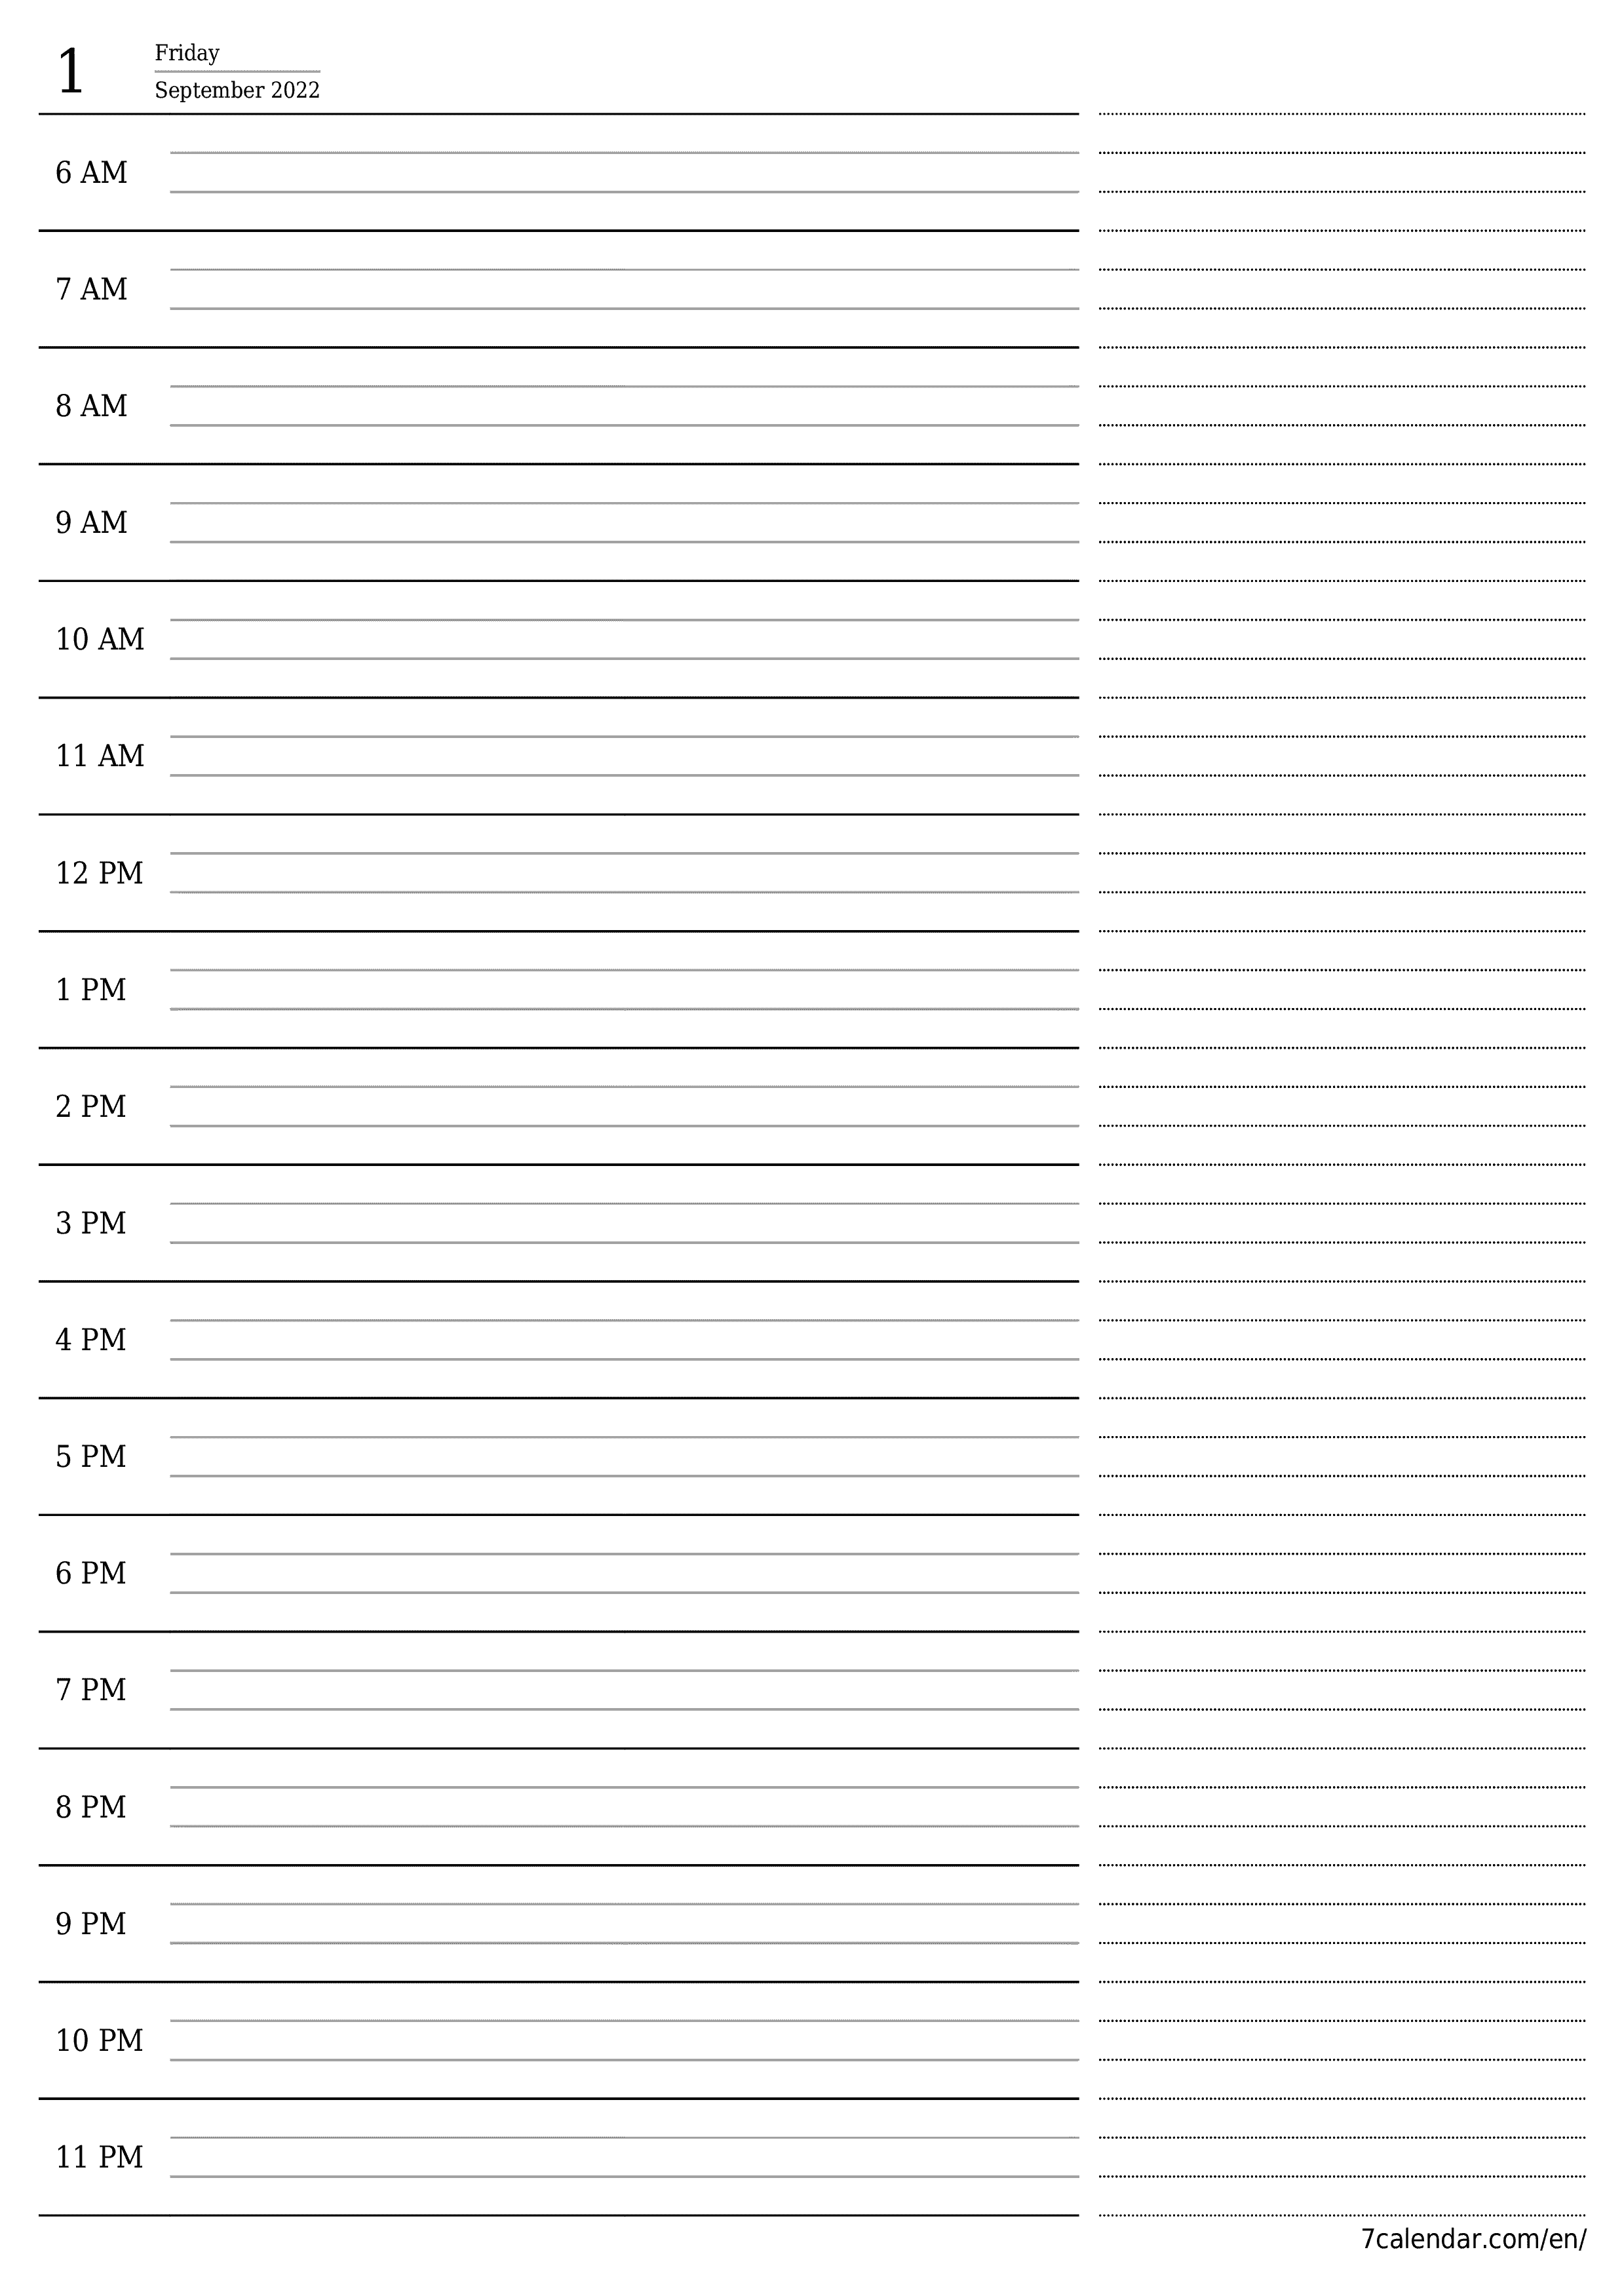 Blank daily calendar planner for day September 2022 with notes, save and print to PDF  - 7calendar.com